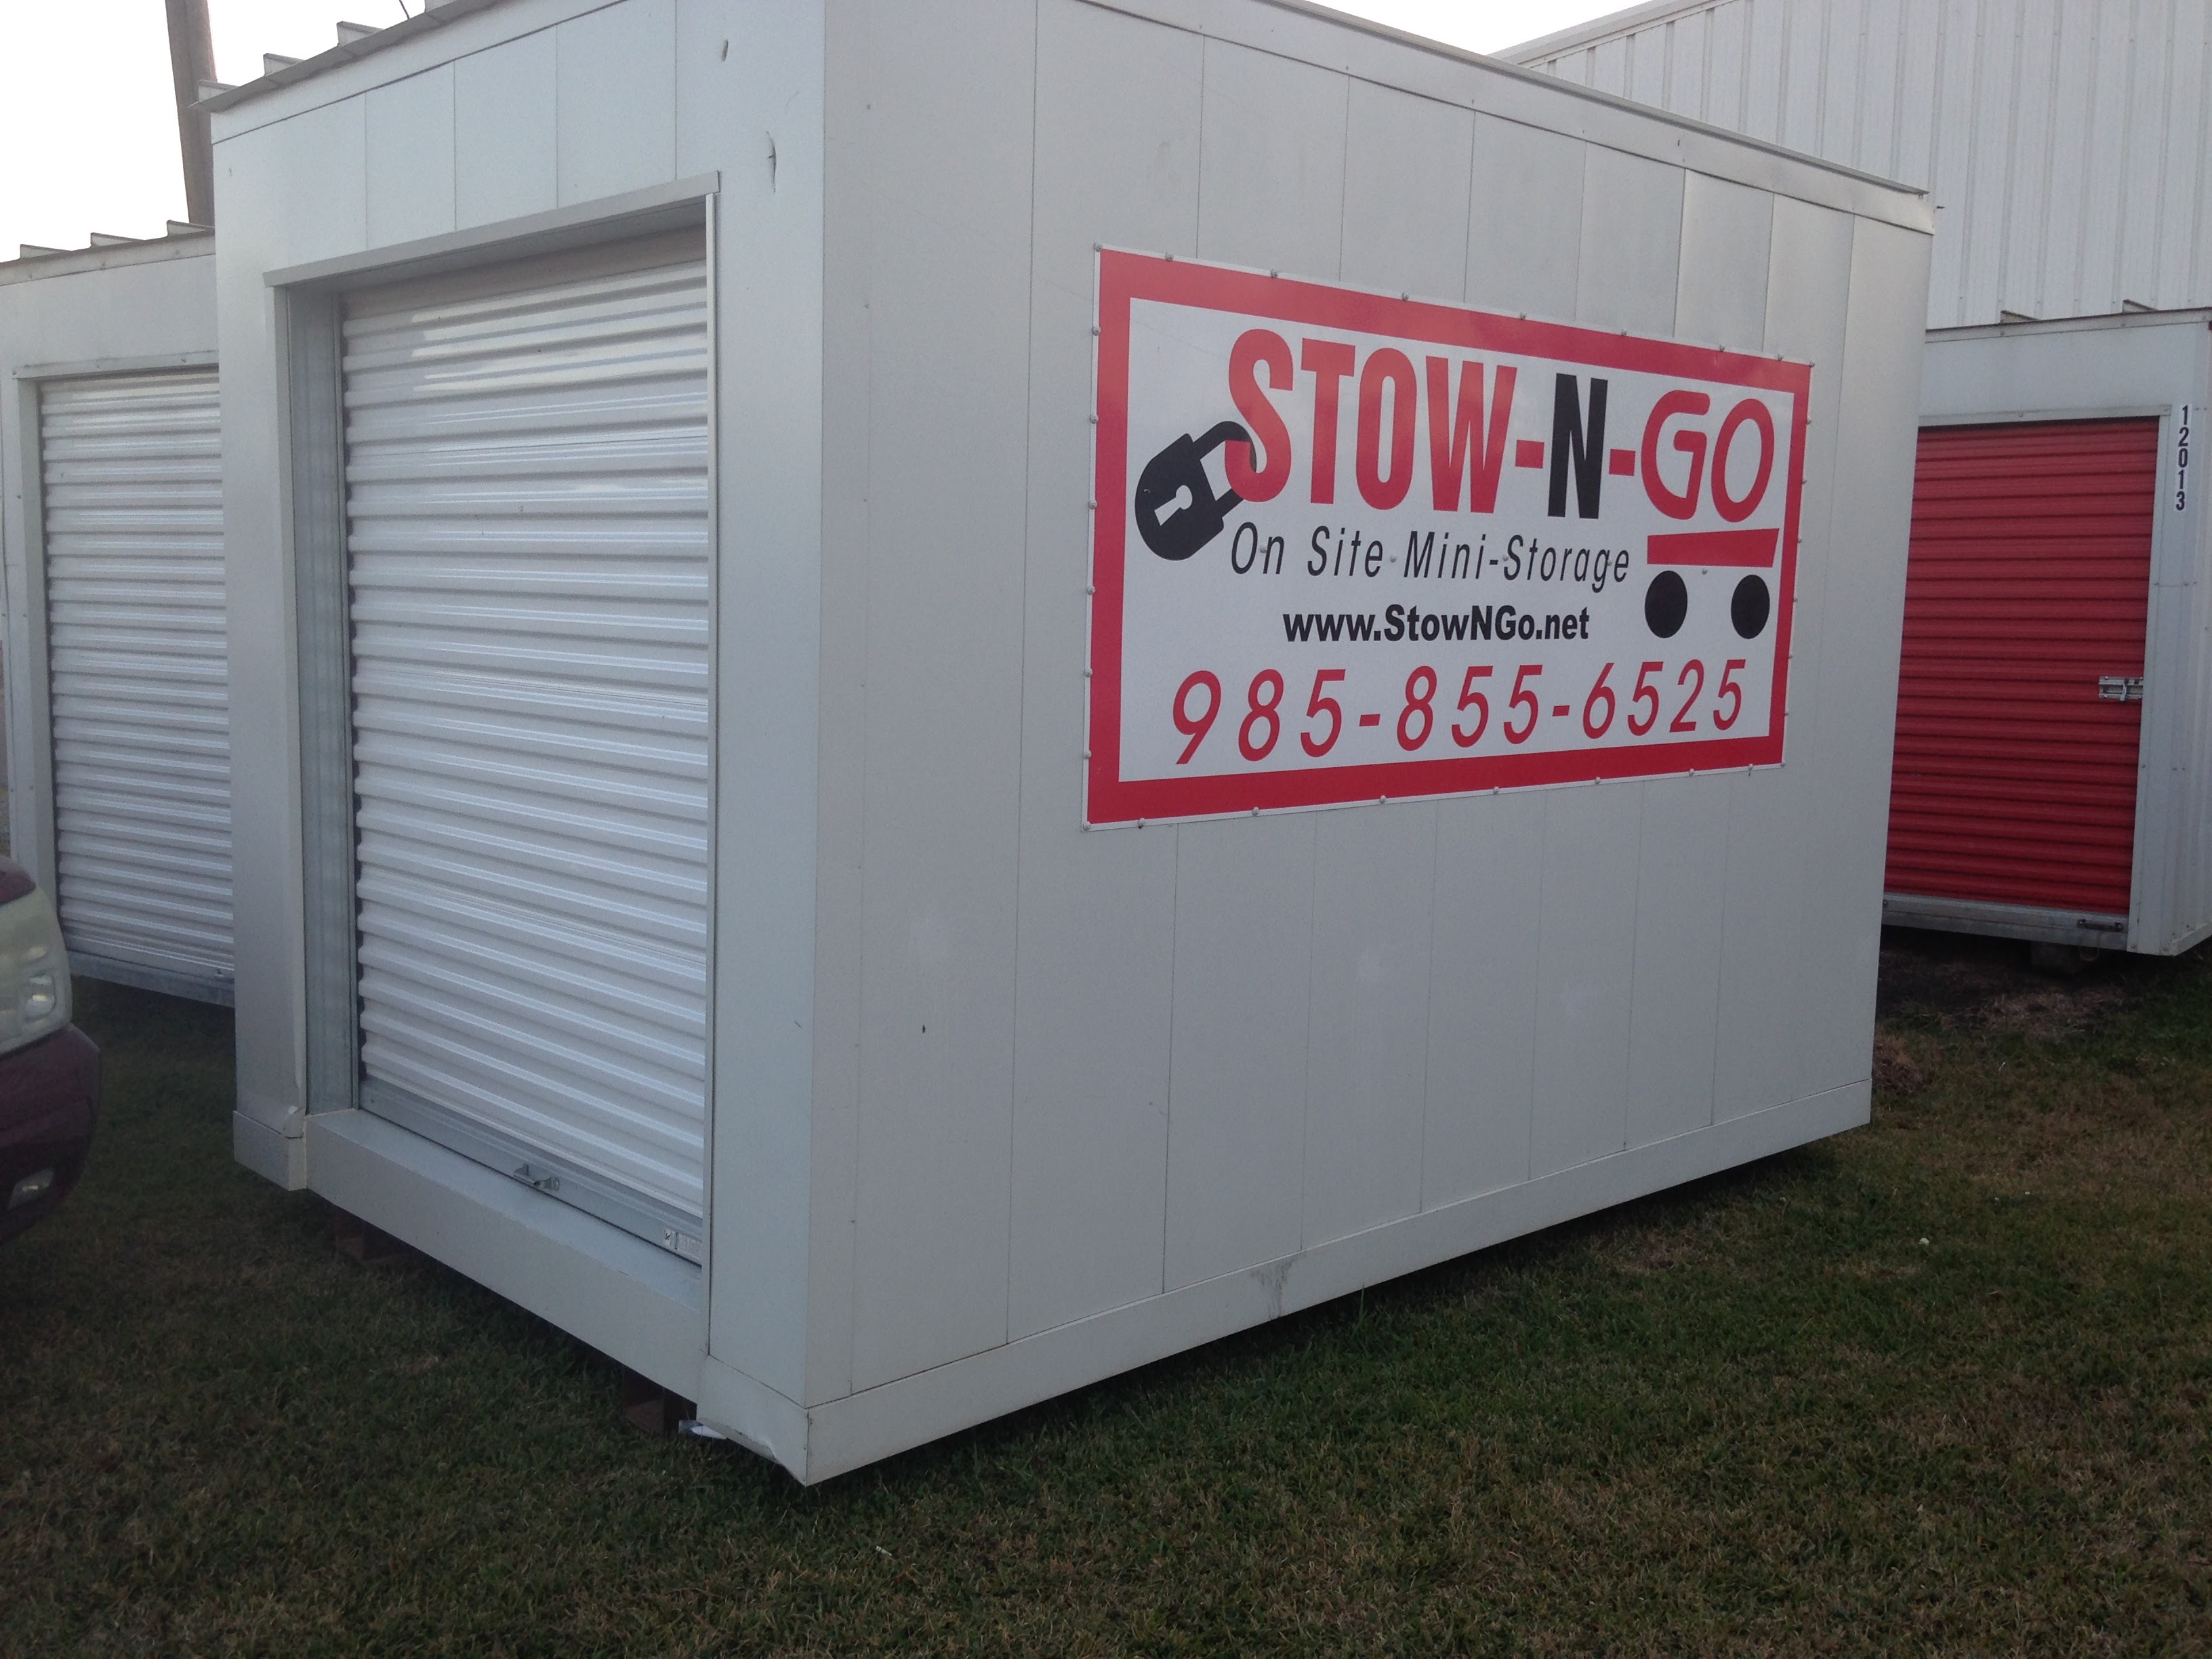 Stow-N-Go image 2